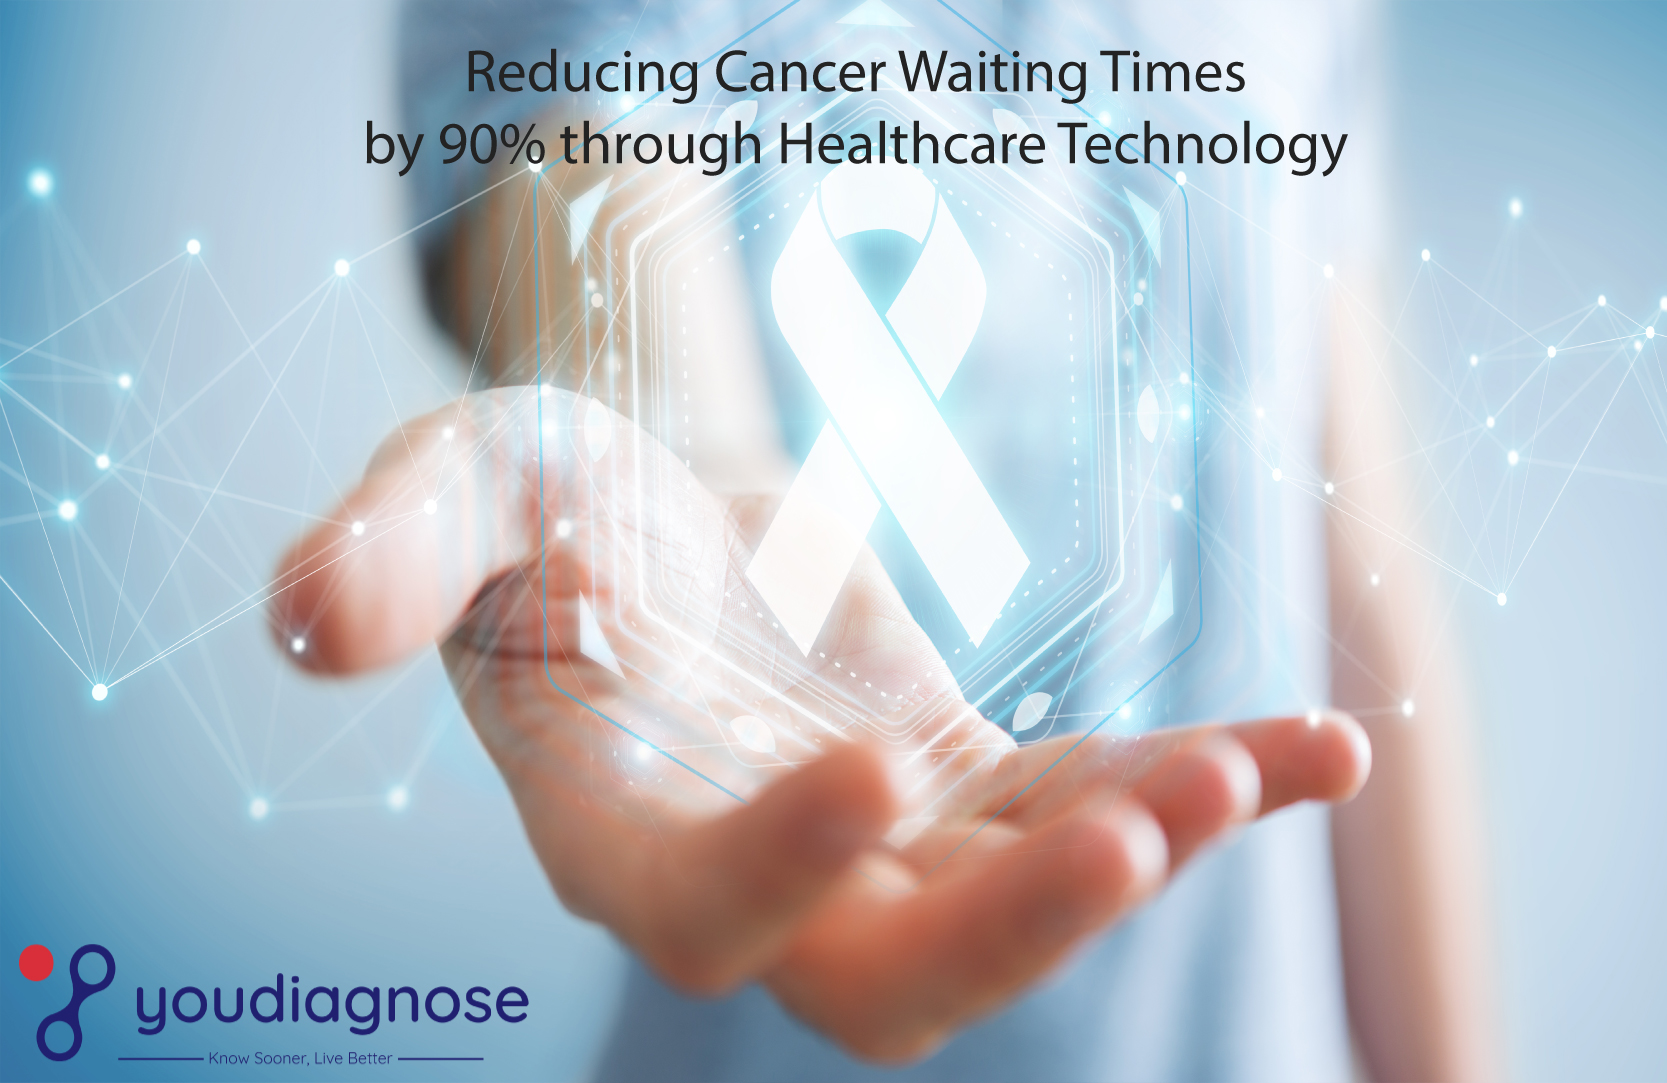 Reducing Cancer Waiting Times by 90% through Healthcare Technology